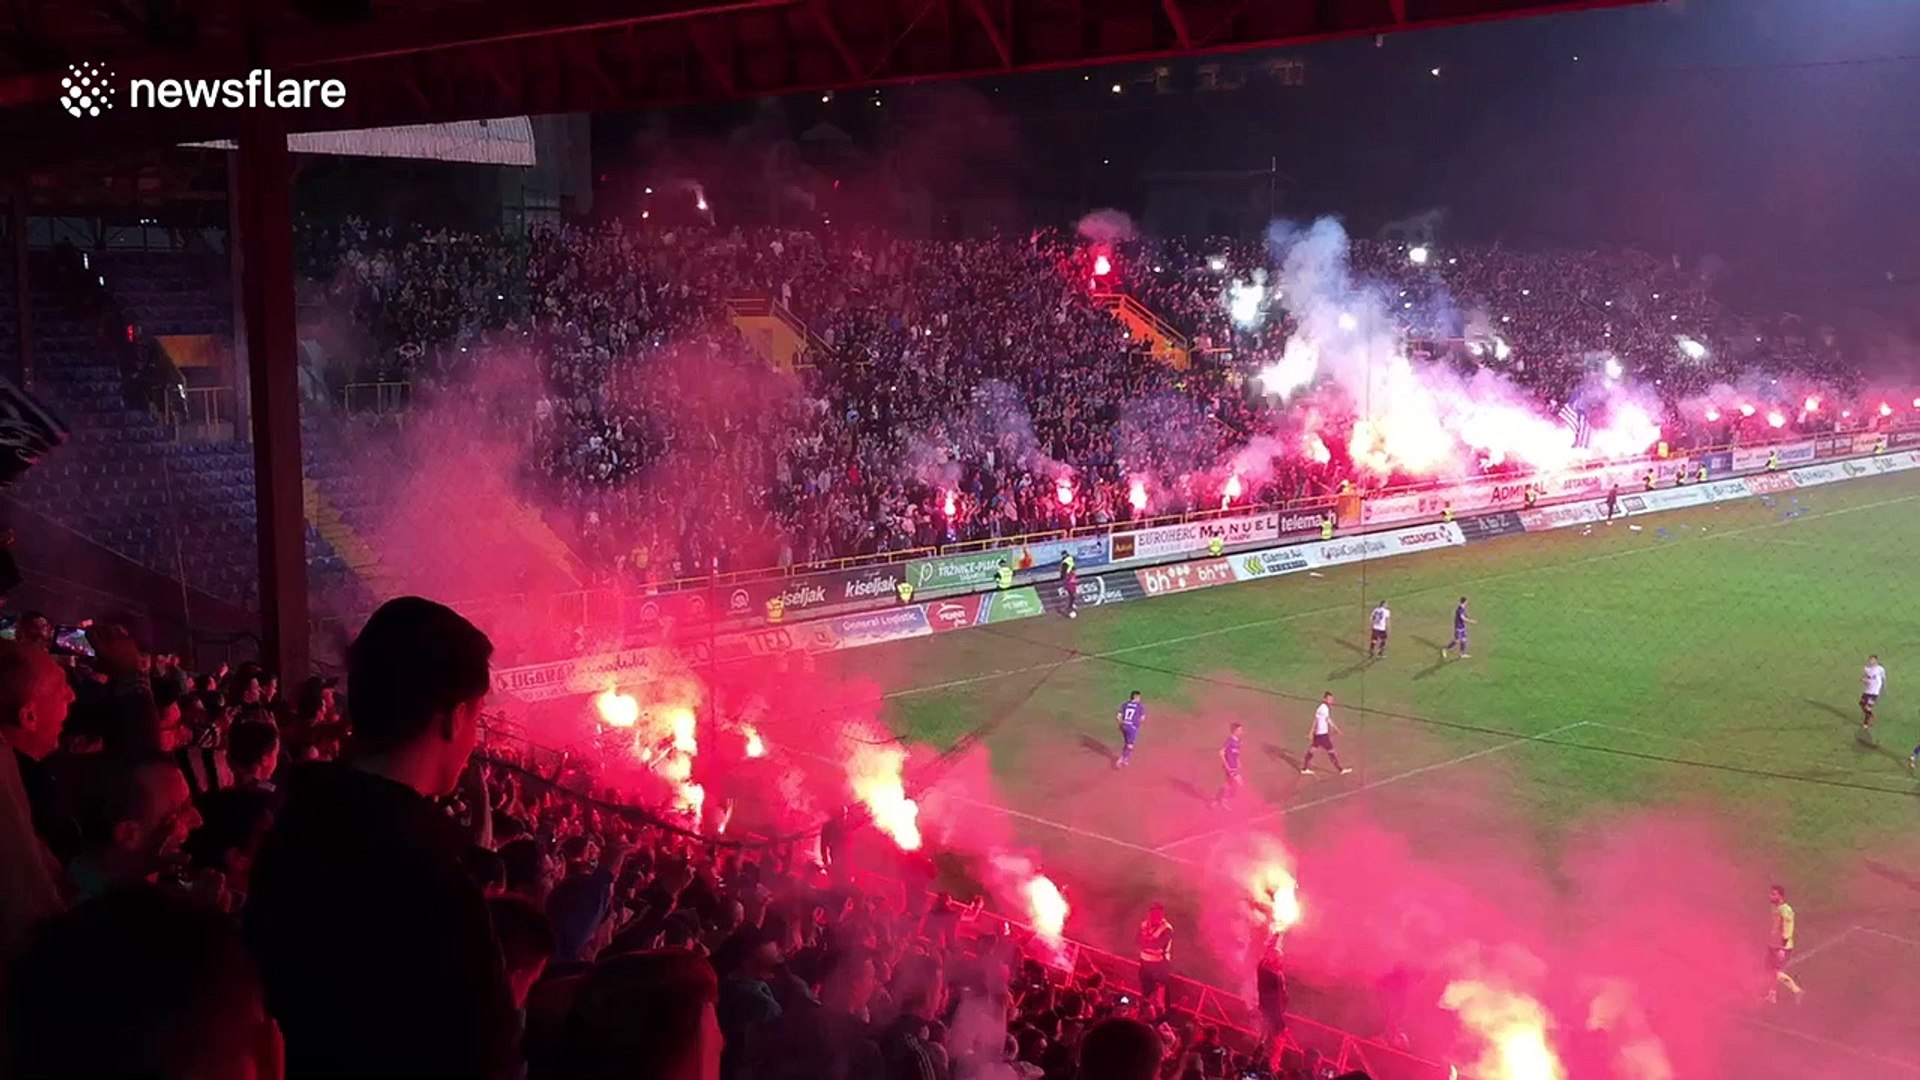 Unbelievable football atmosphere in Sarajevo